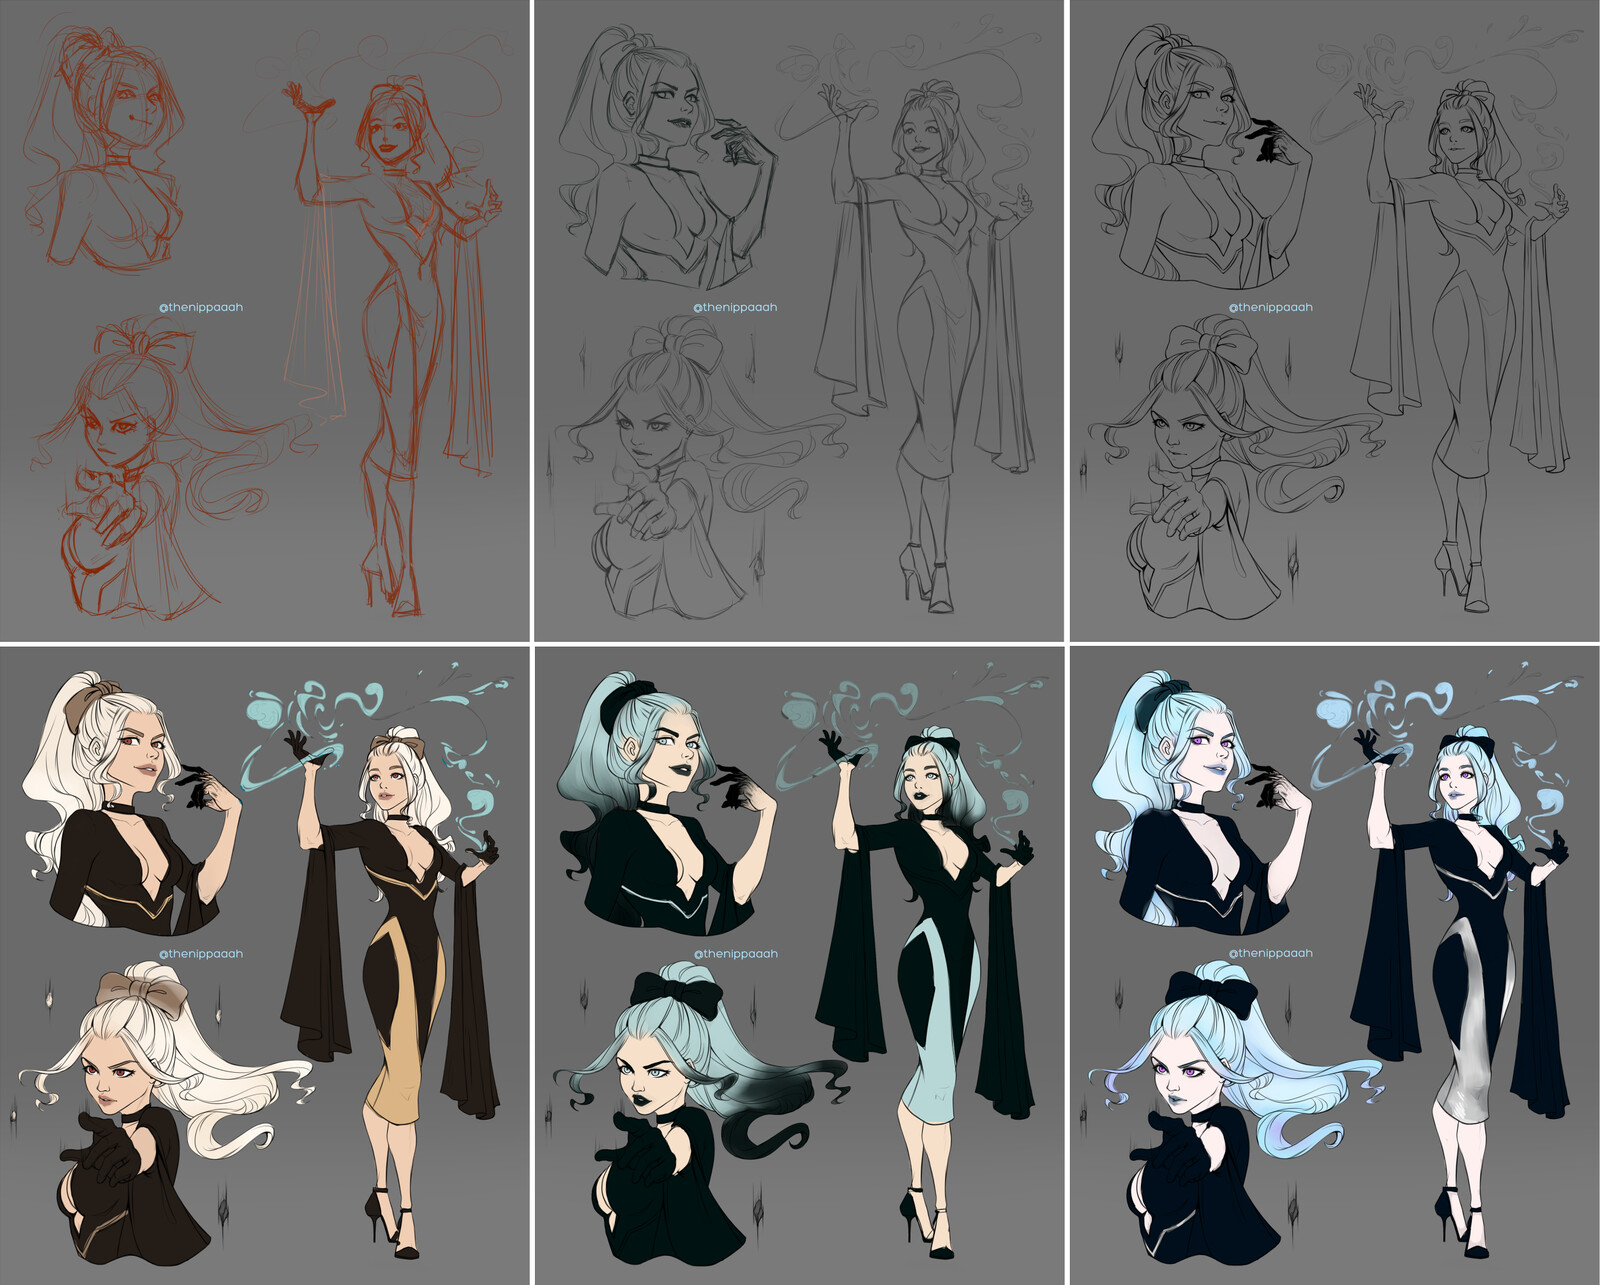 From sketch to lineart progress & color variations